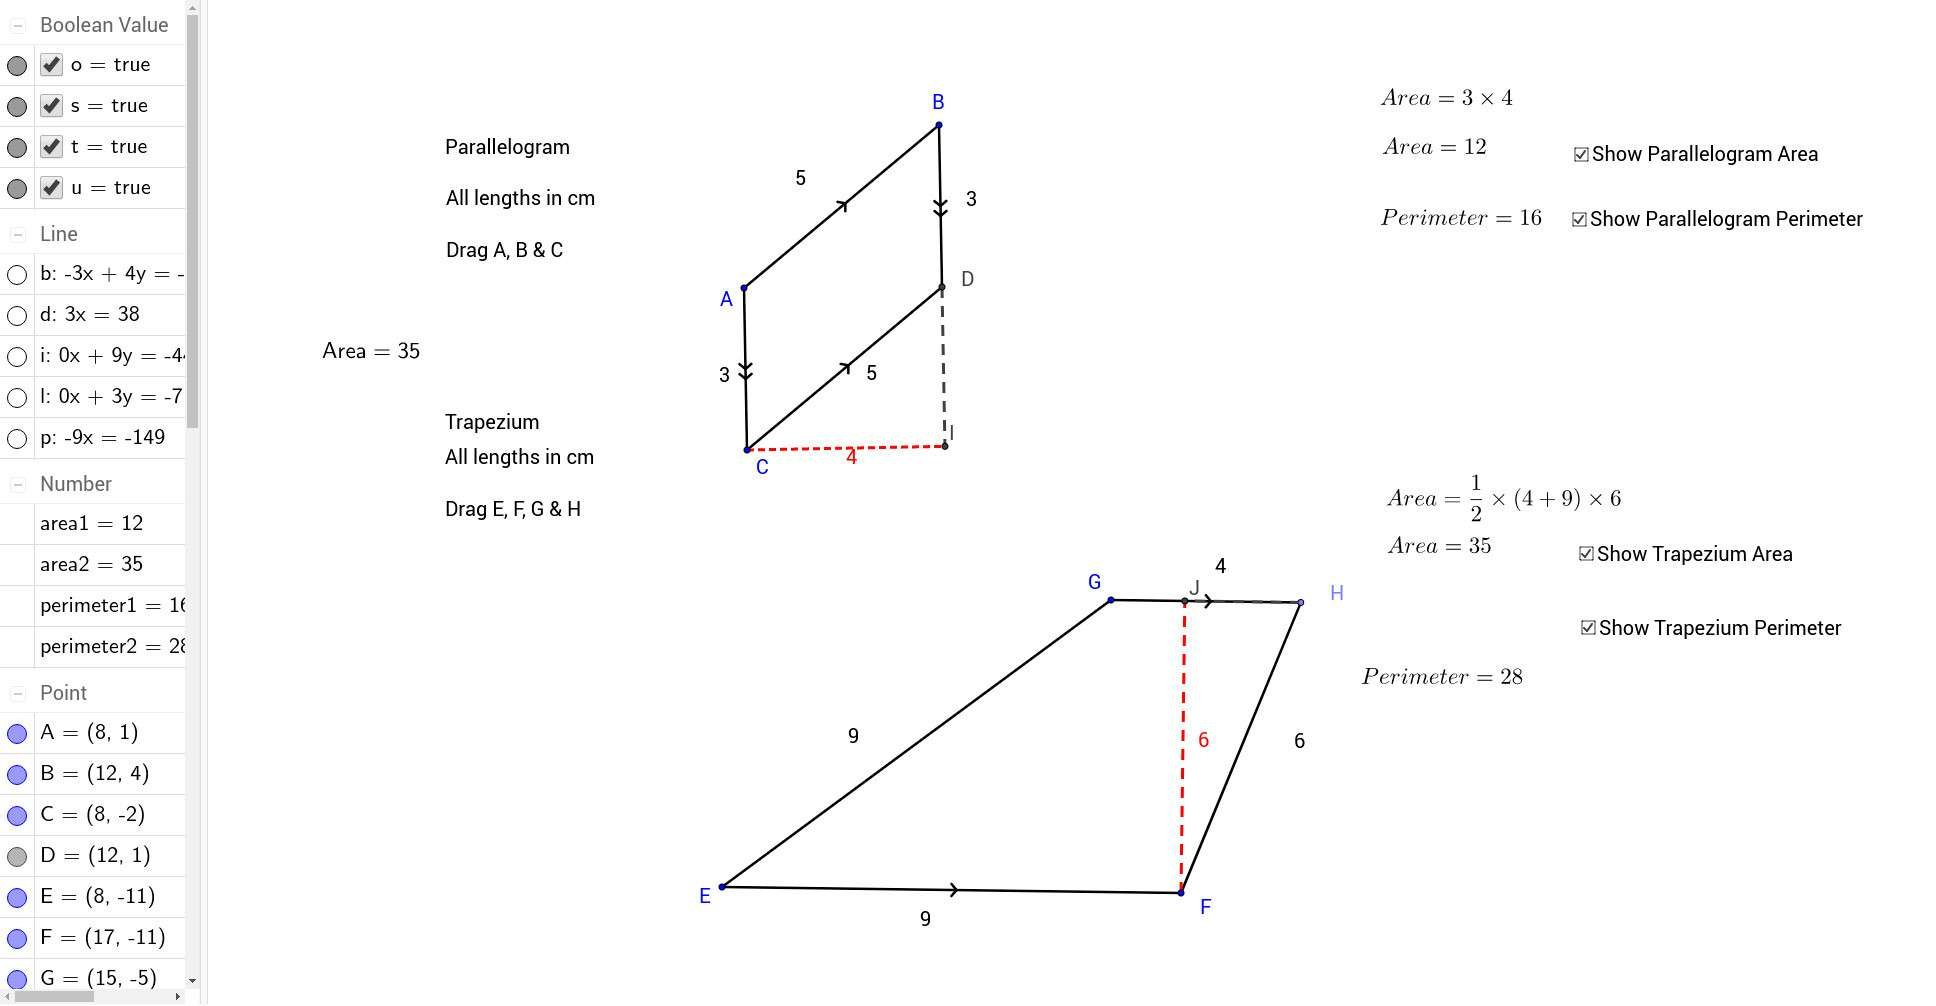 Proving Triangles Congruent Worksheet Answers  Worksheet Idea Template As Well As Proofs Worksheet 1 Answers